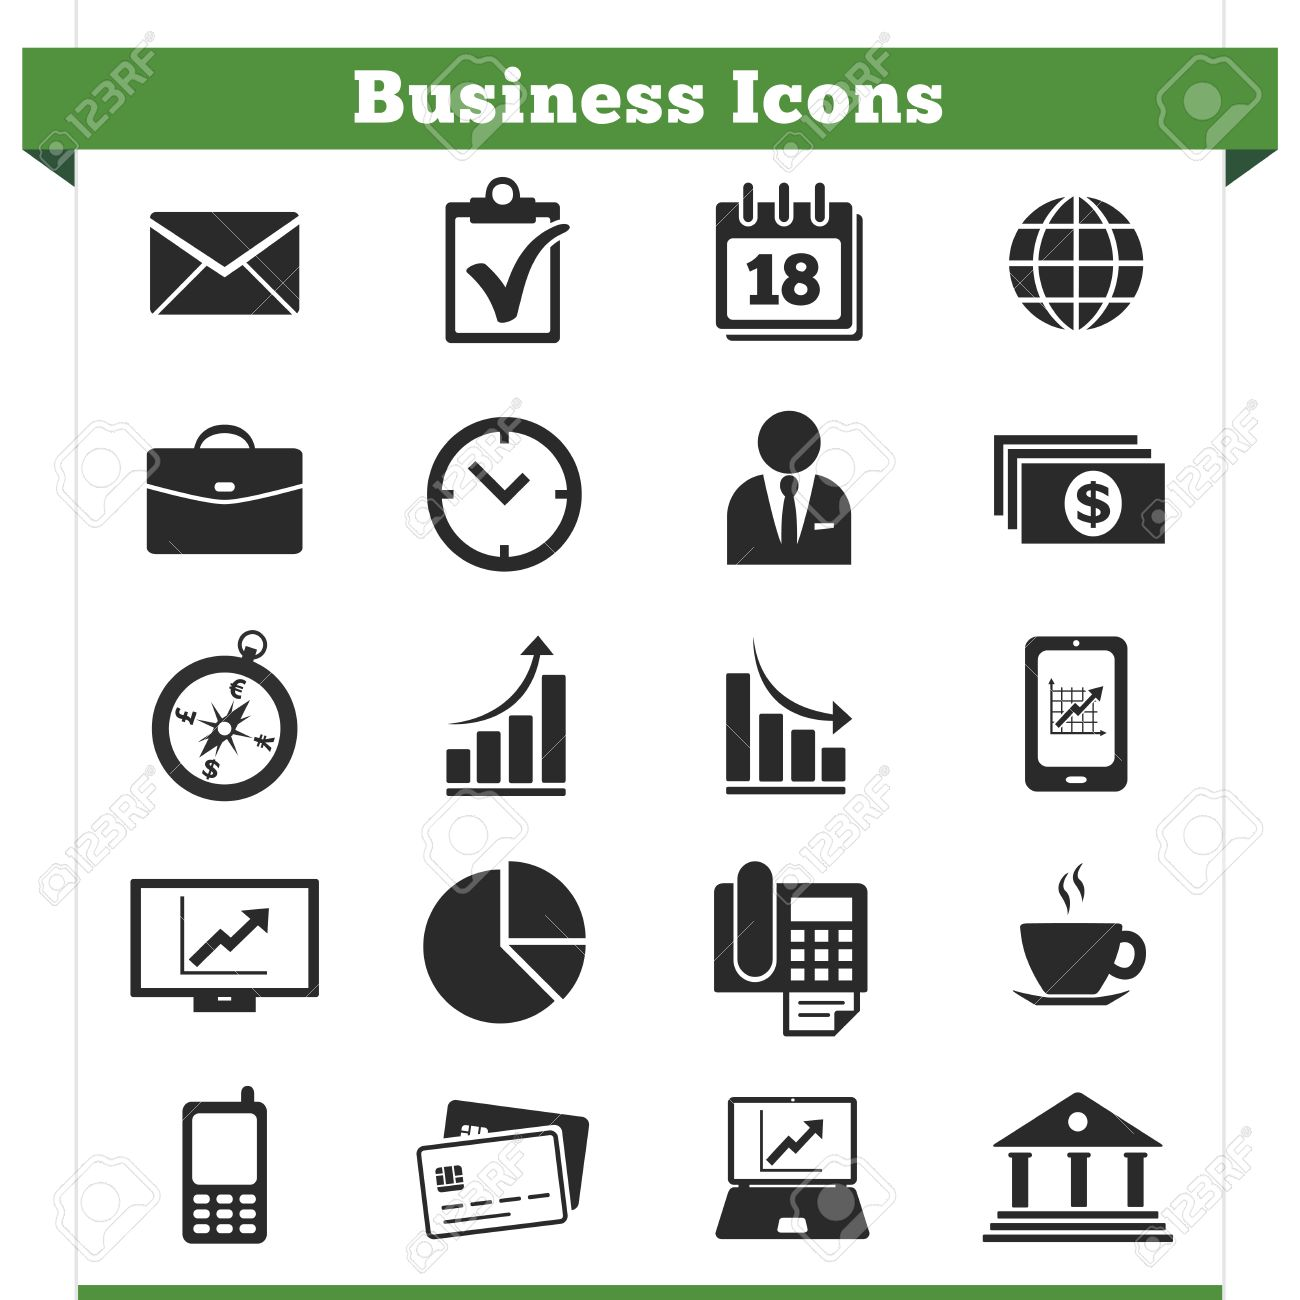 Phone icon business card gallery free business cards phone icon for business cards images free business cards business card phone icon image collections free magicingreecefo Gallery